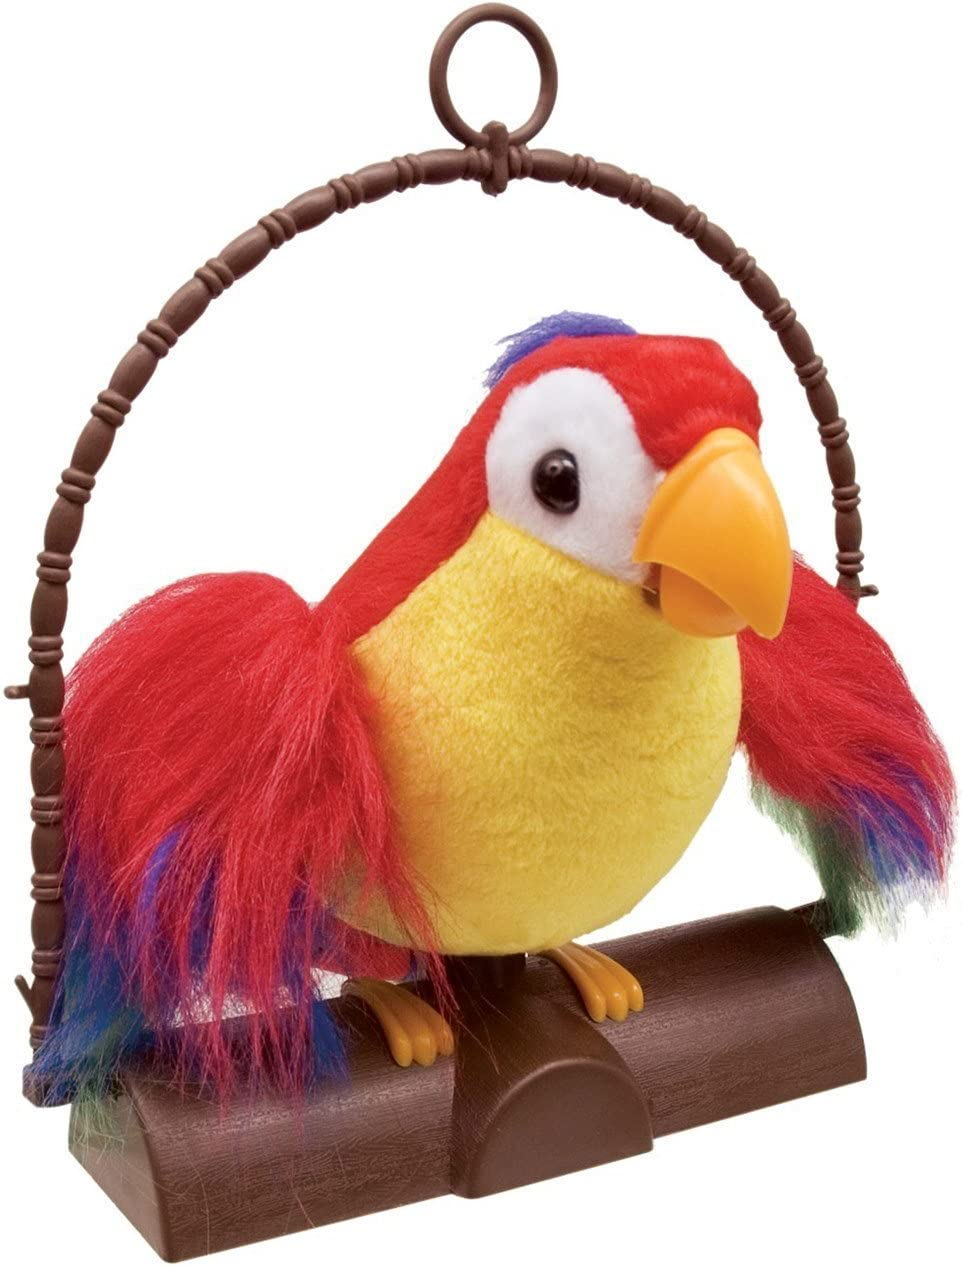 Talking Toy Stuffed Amimal Bird Musical Parrot Plush Toy for Kids Children